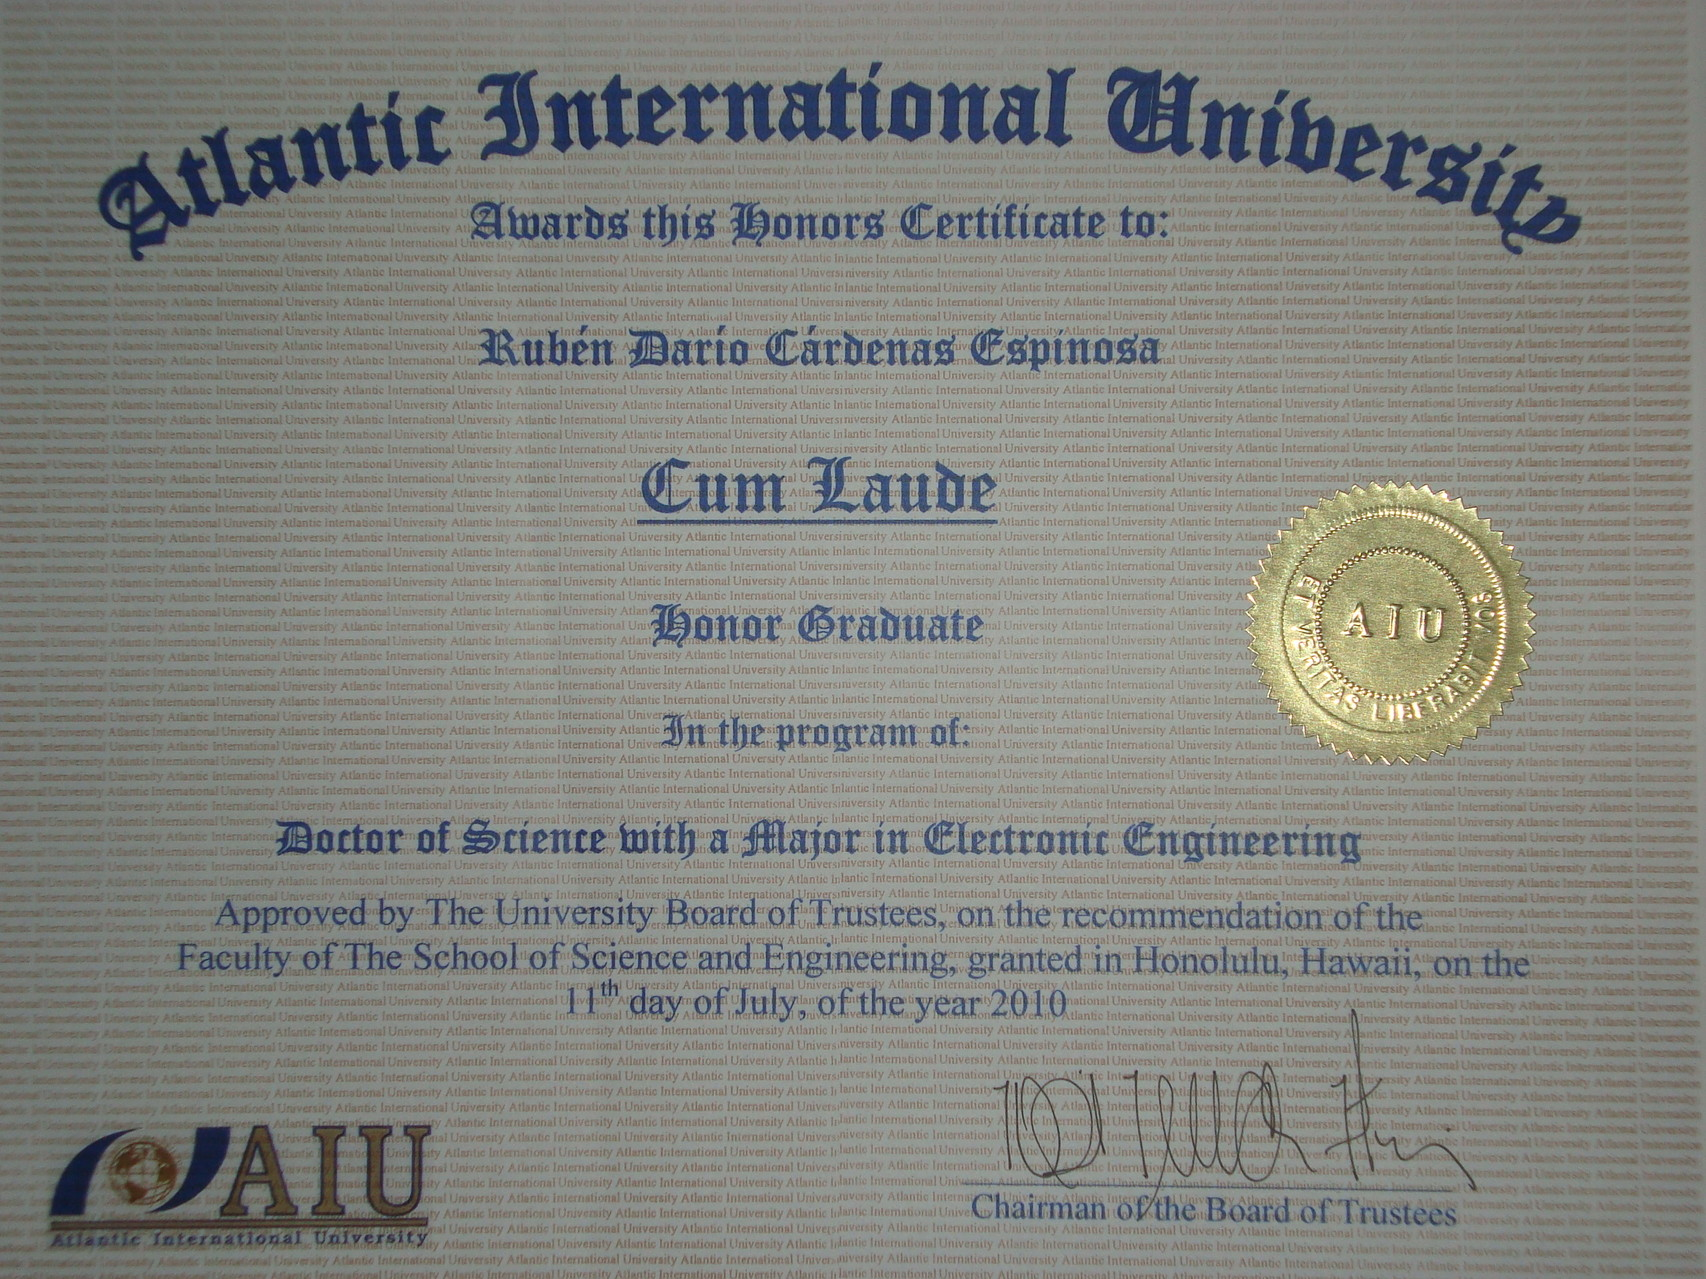 CUM LAUDE Doctor of Sciences with major in Electronic Engineering